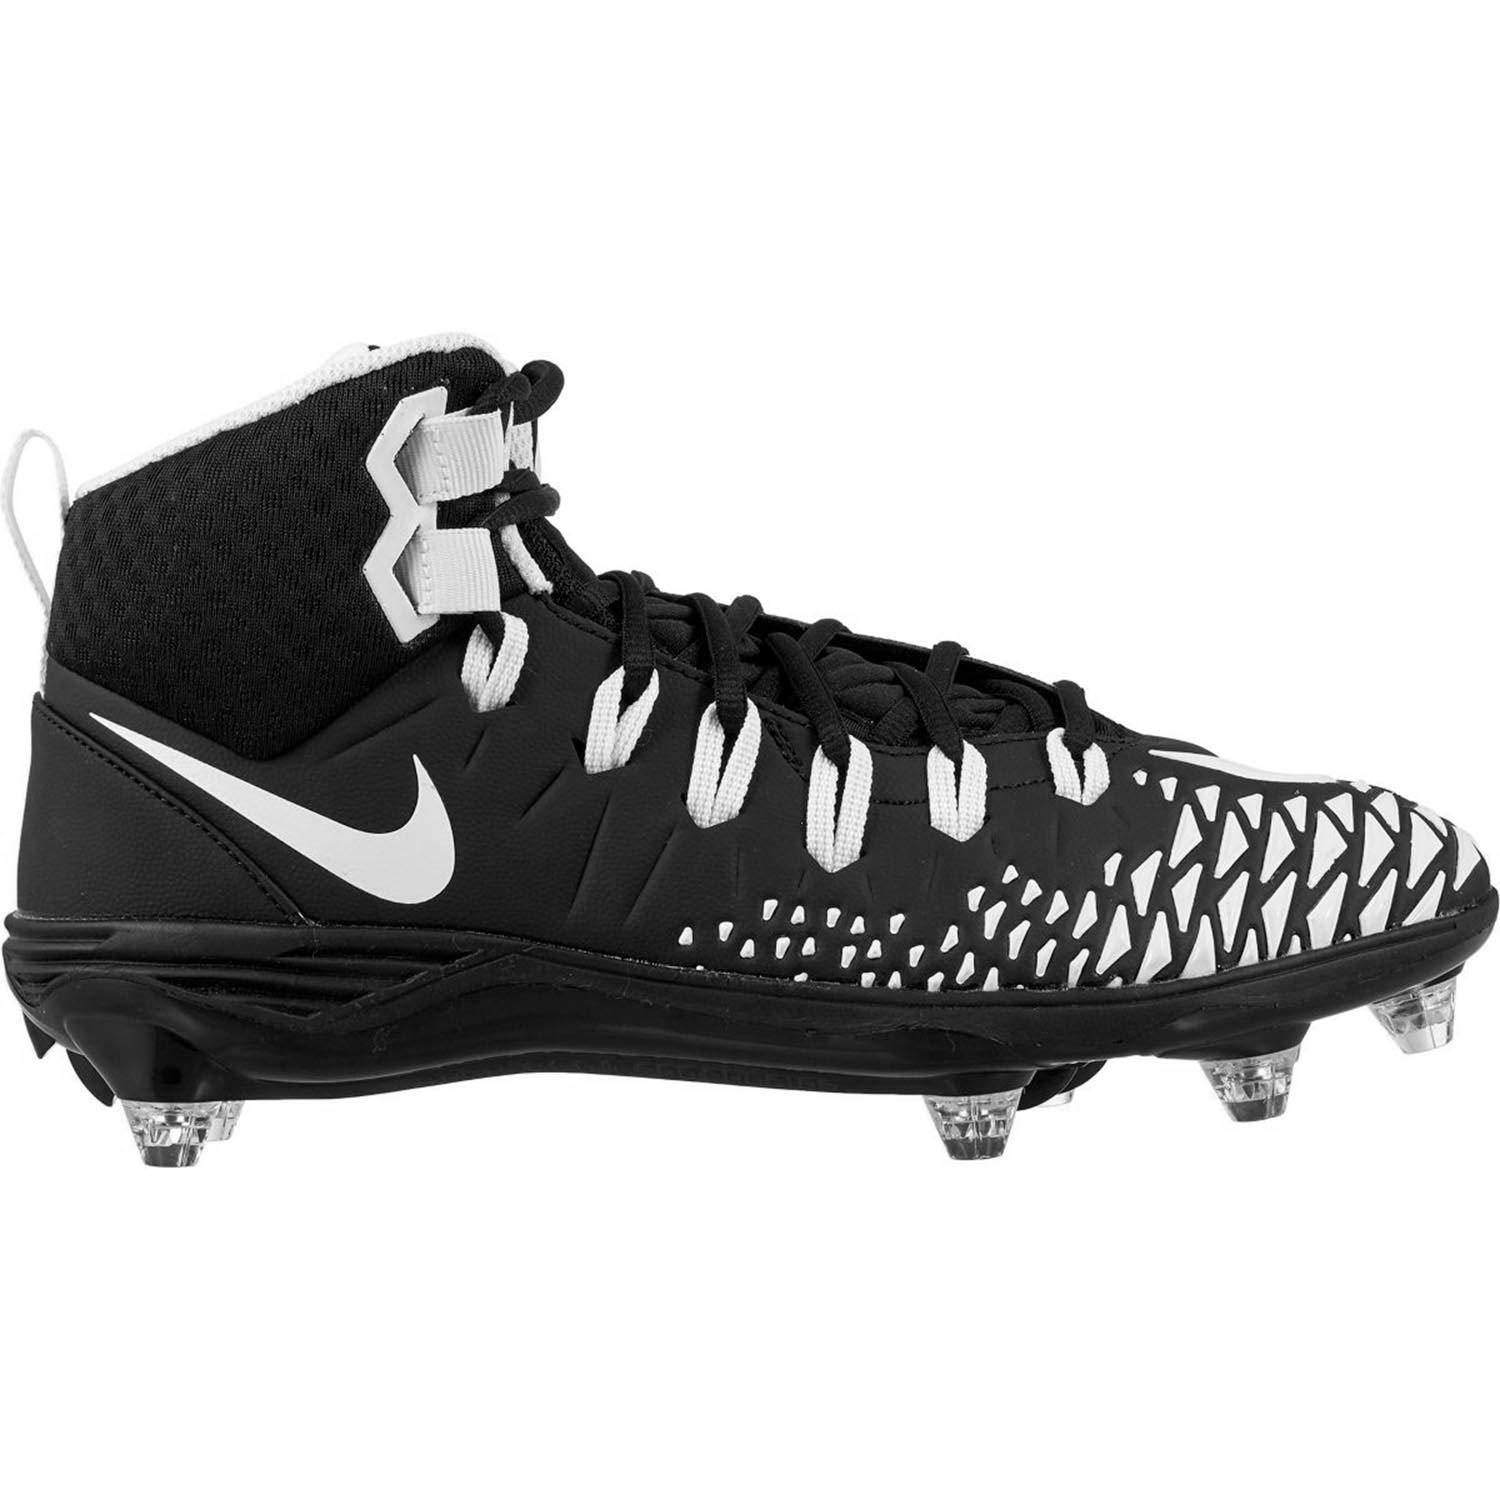 Nike Force Savage Pro D Men's Football Cleats 黒/白い/黒/黒 Size 11